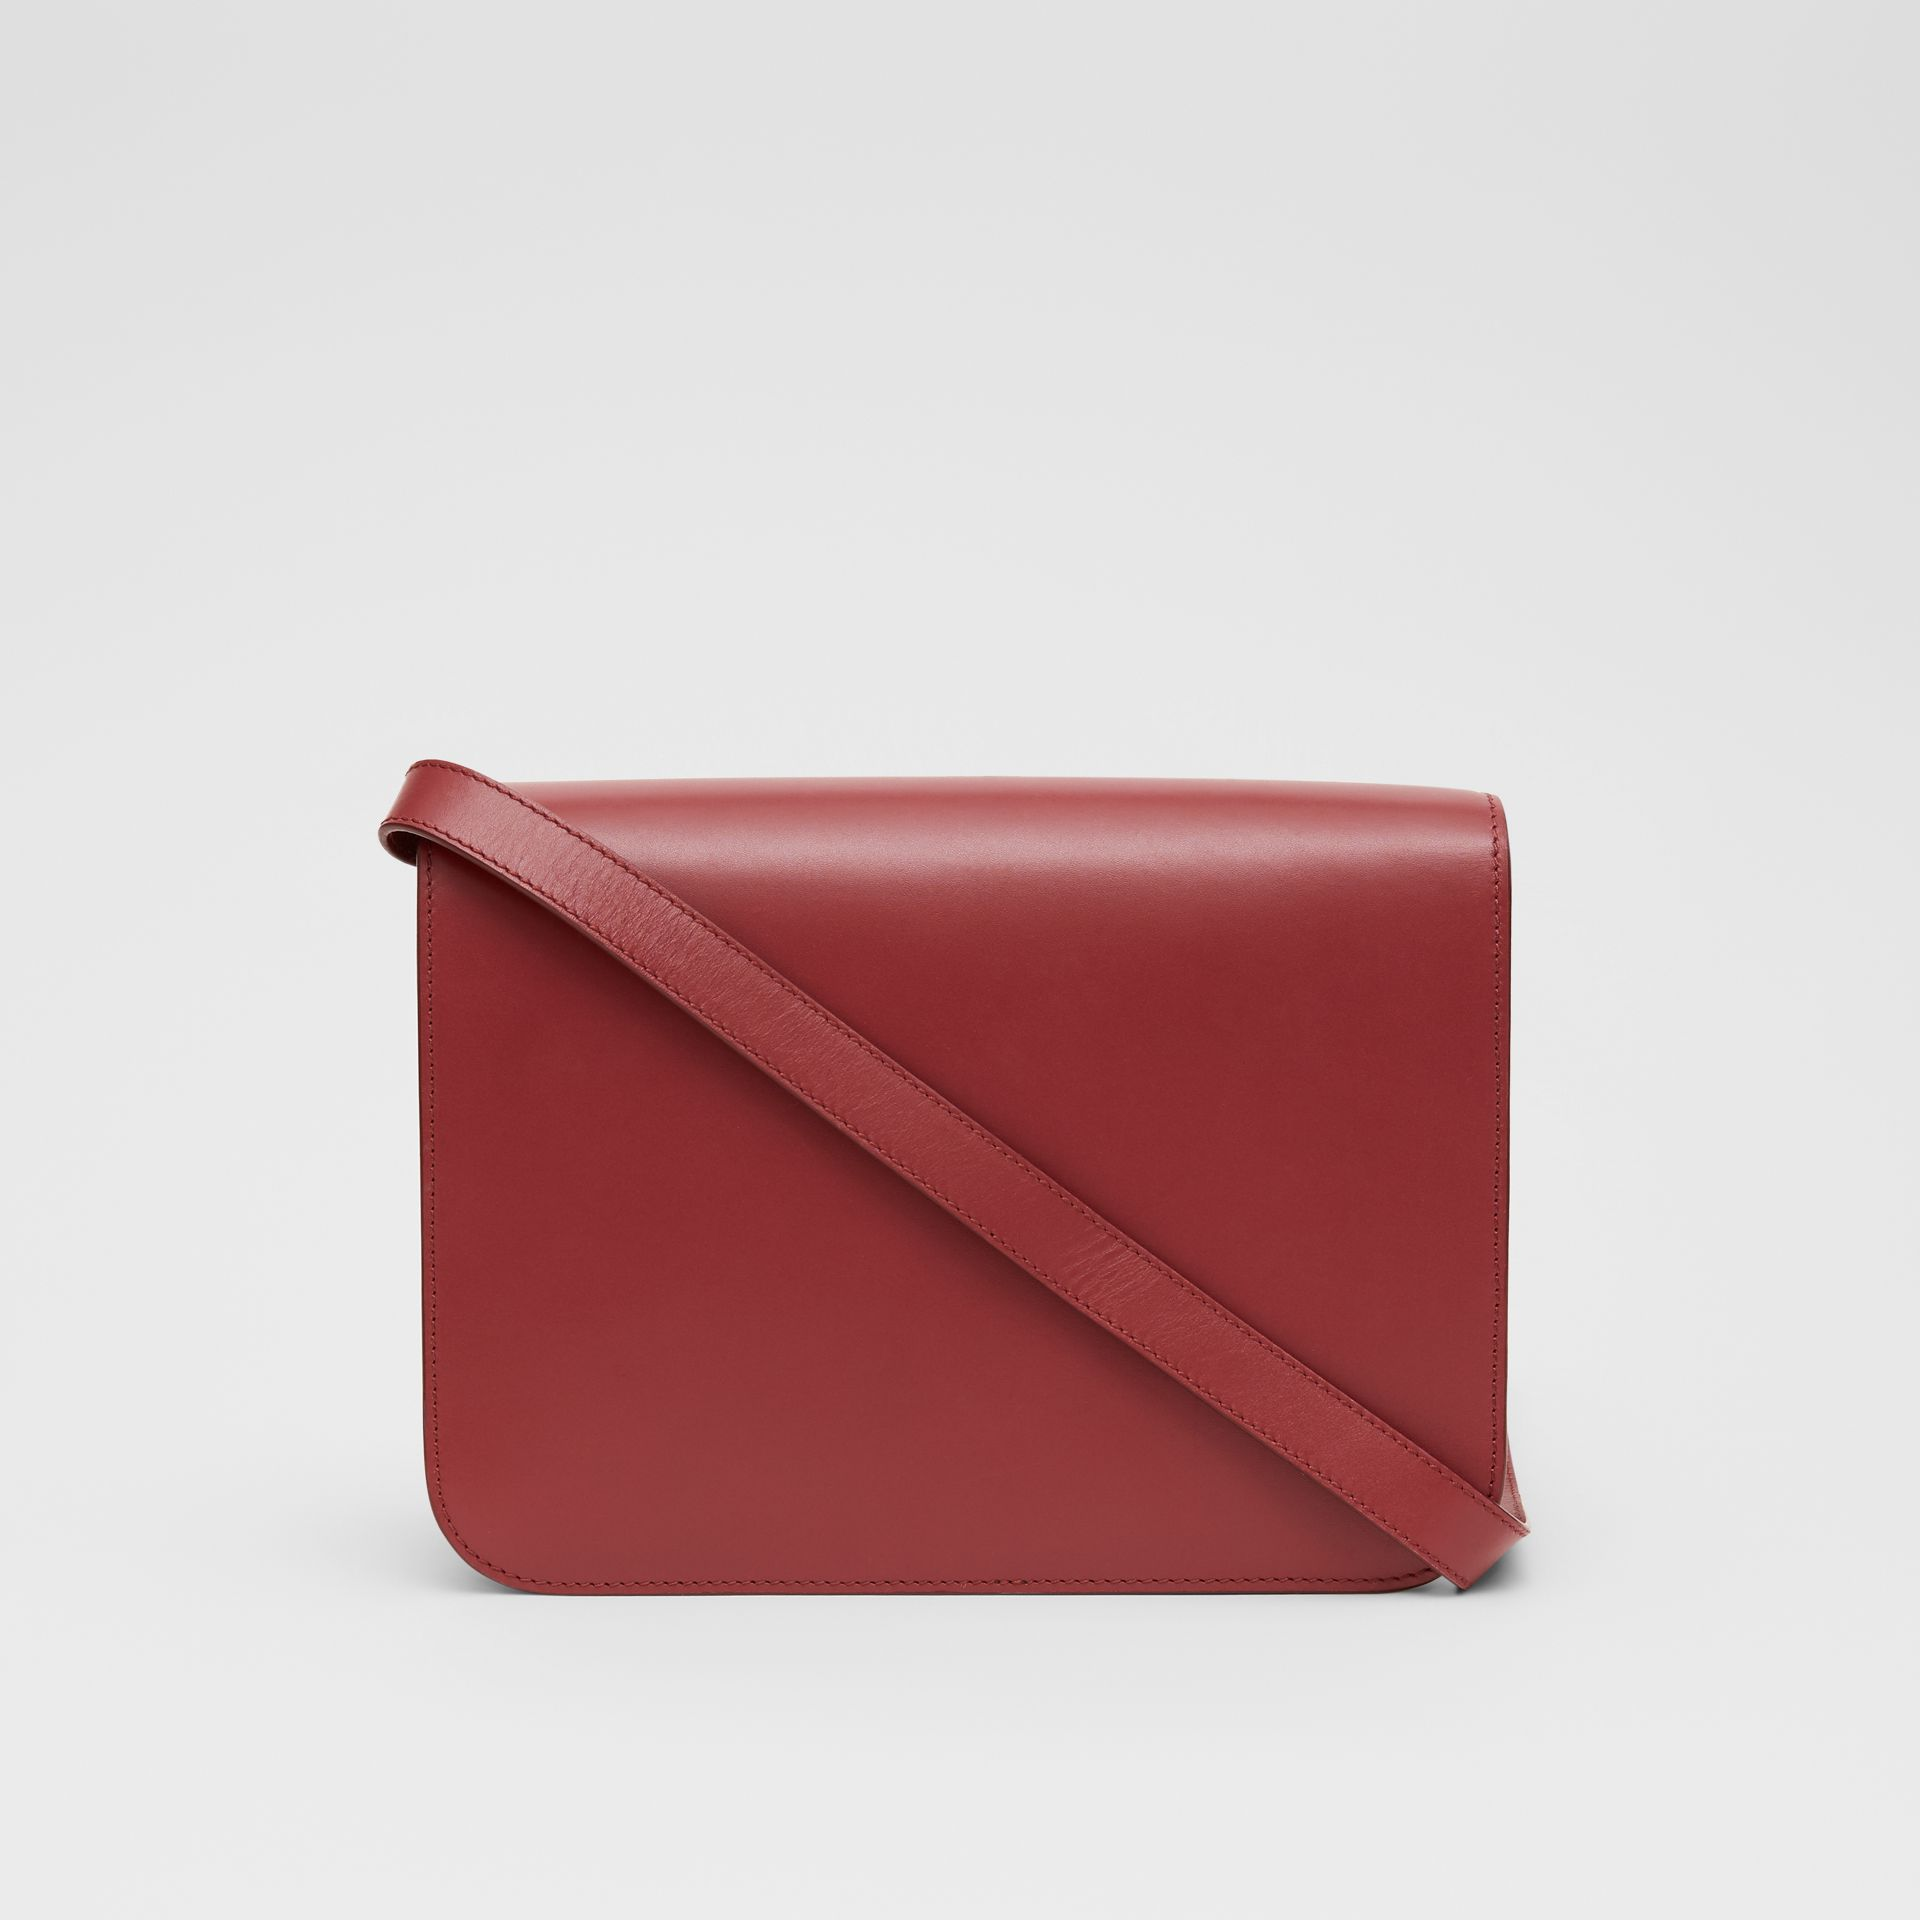 Medium Leather TB Bag in Crimson - Women | Burberry Canada - gallery image 7